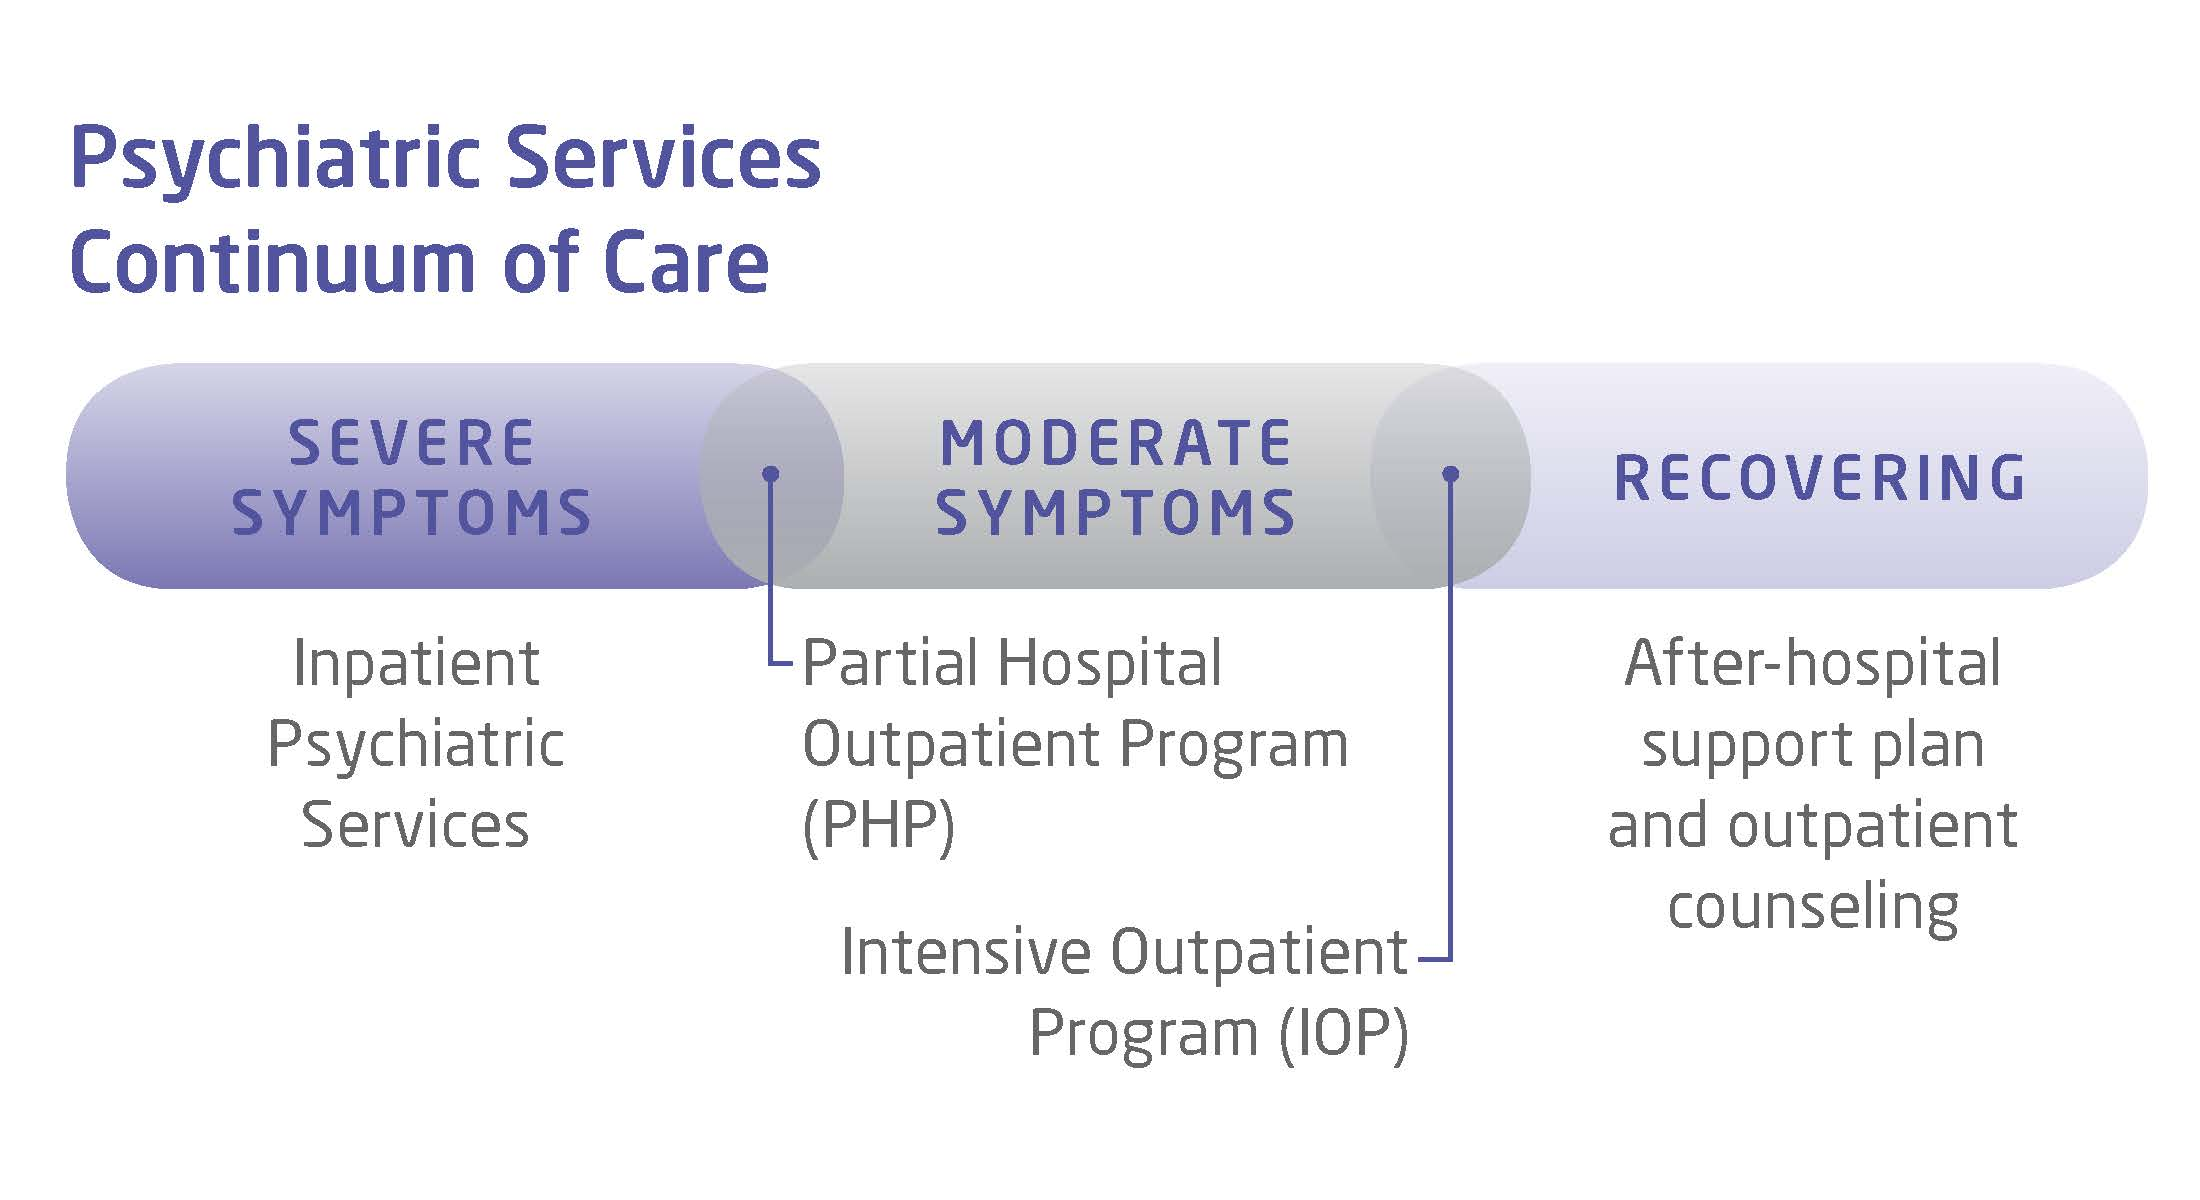 northwestern-medicine-continuum-of-care-for-psychiatric-services